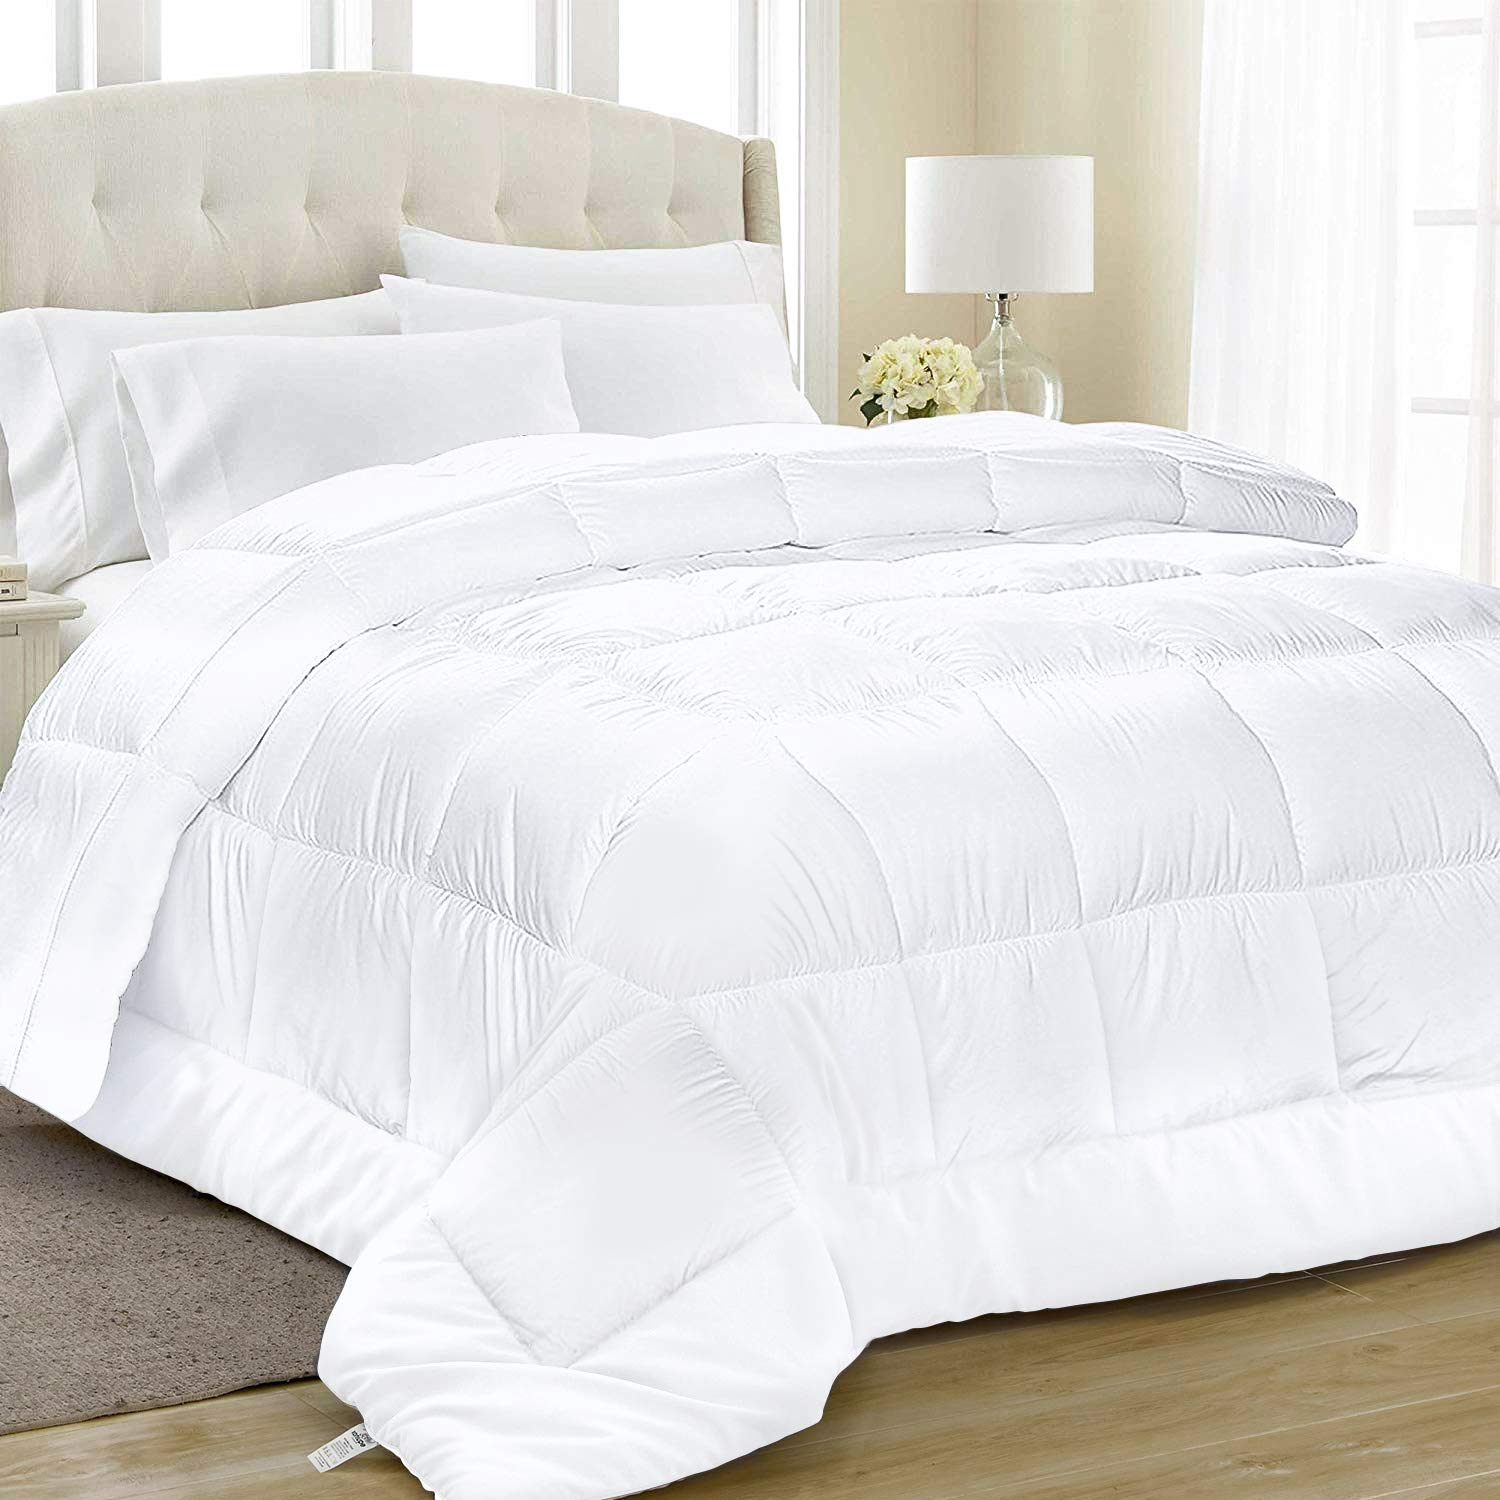 Best Rated In Bedding Duvets Down Comforters Helpful Customer